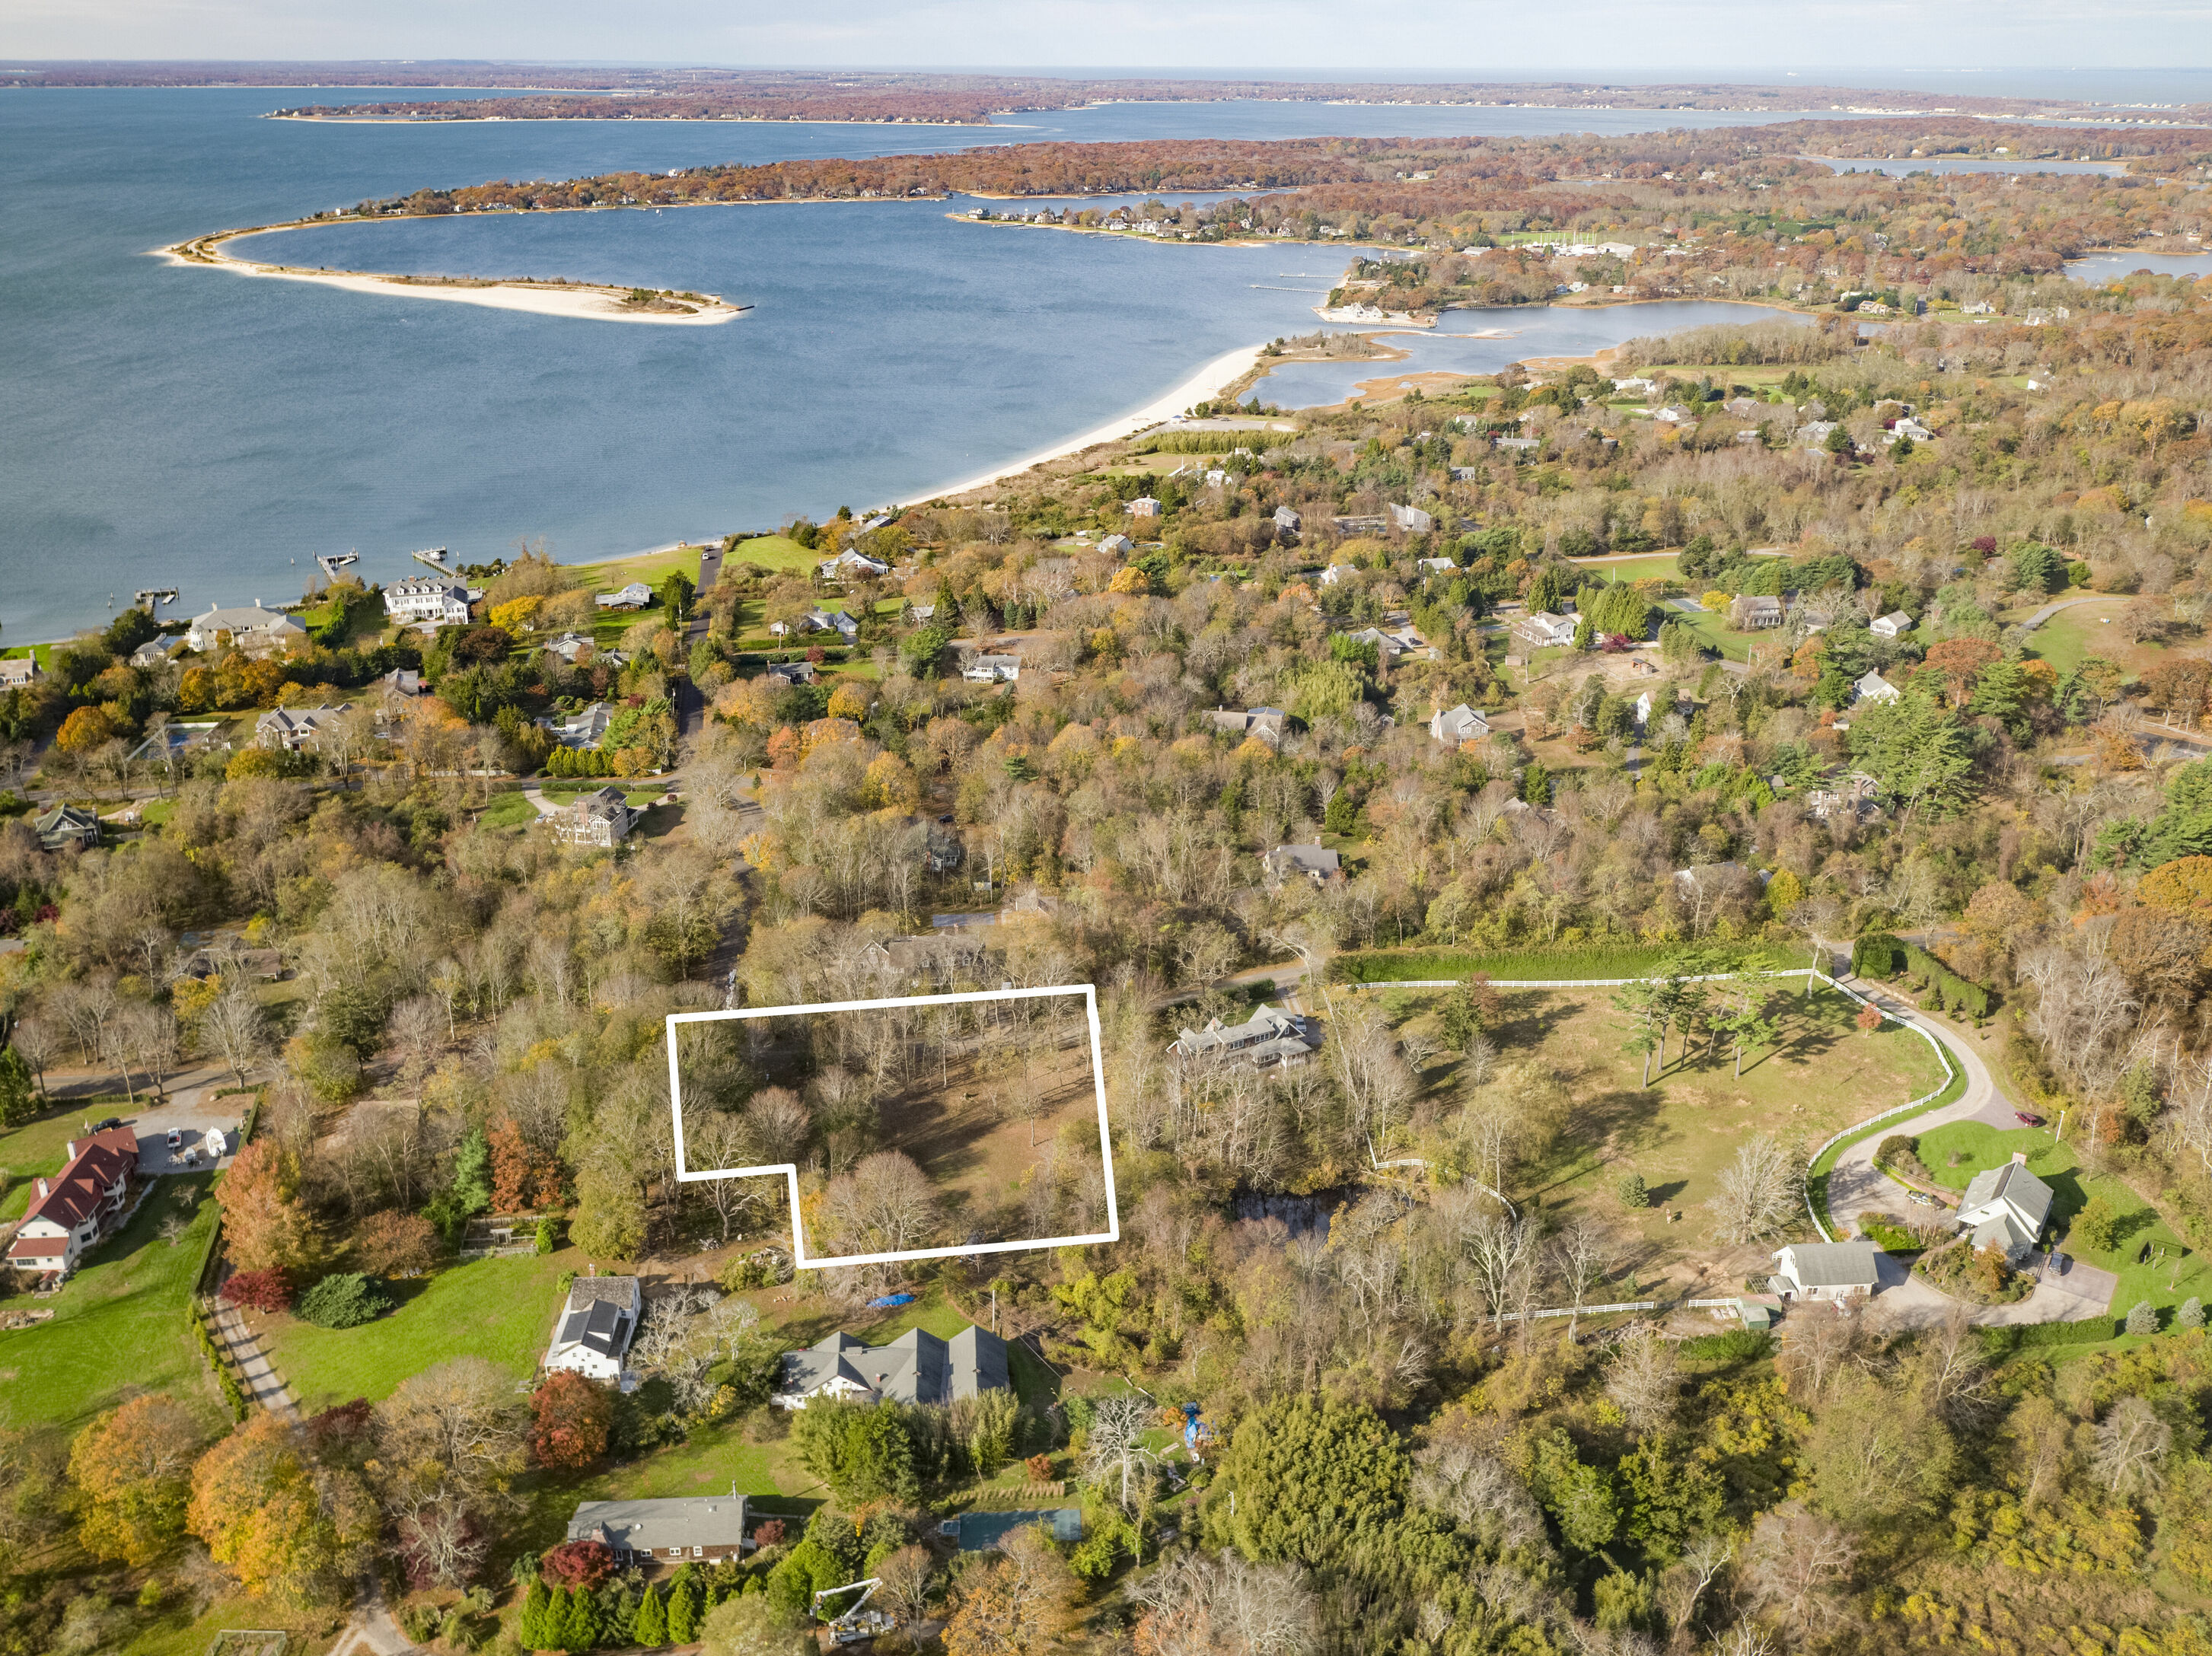 25 Osprey Rd - Shelter Island, New York